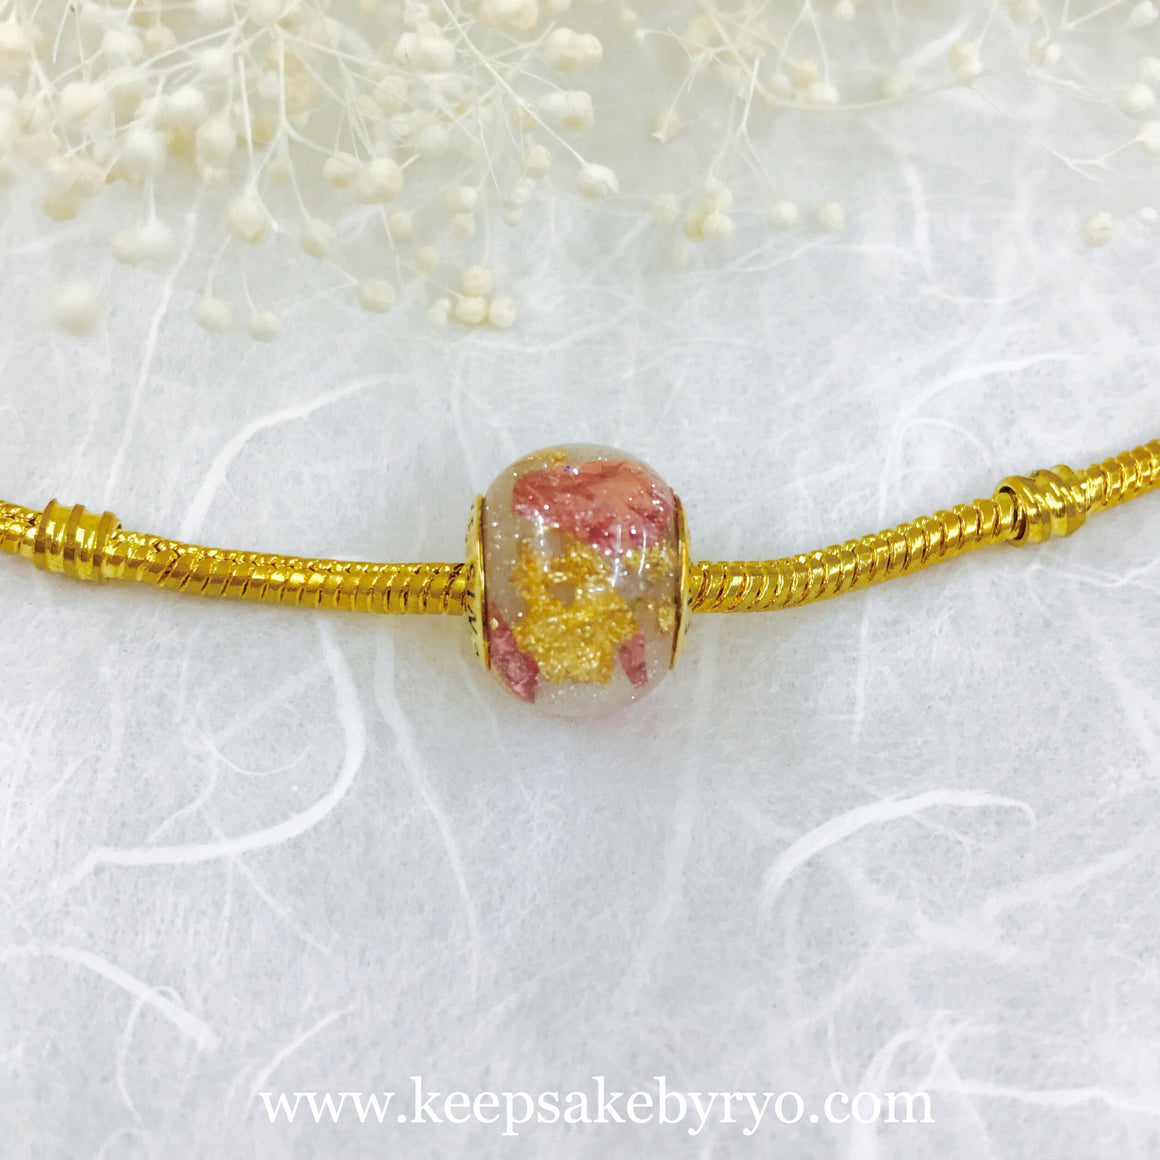 ROSE AND GOLD FLAKES SHIMMER BREASTMILK EUROPEAN CHARM